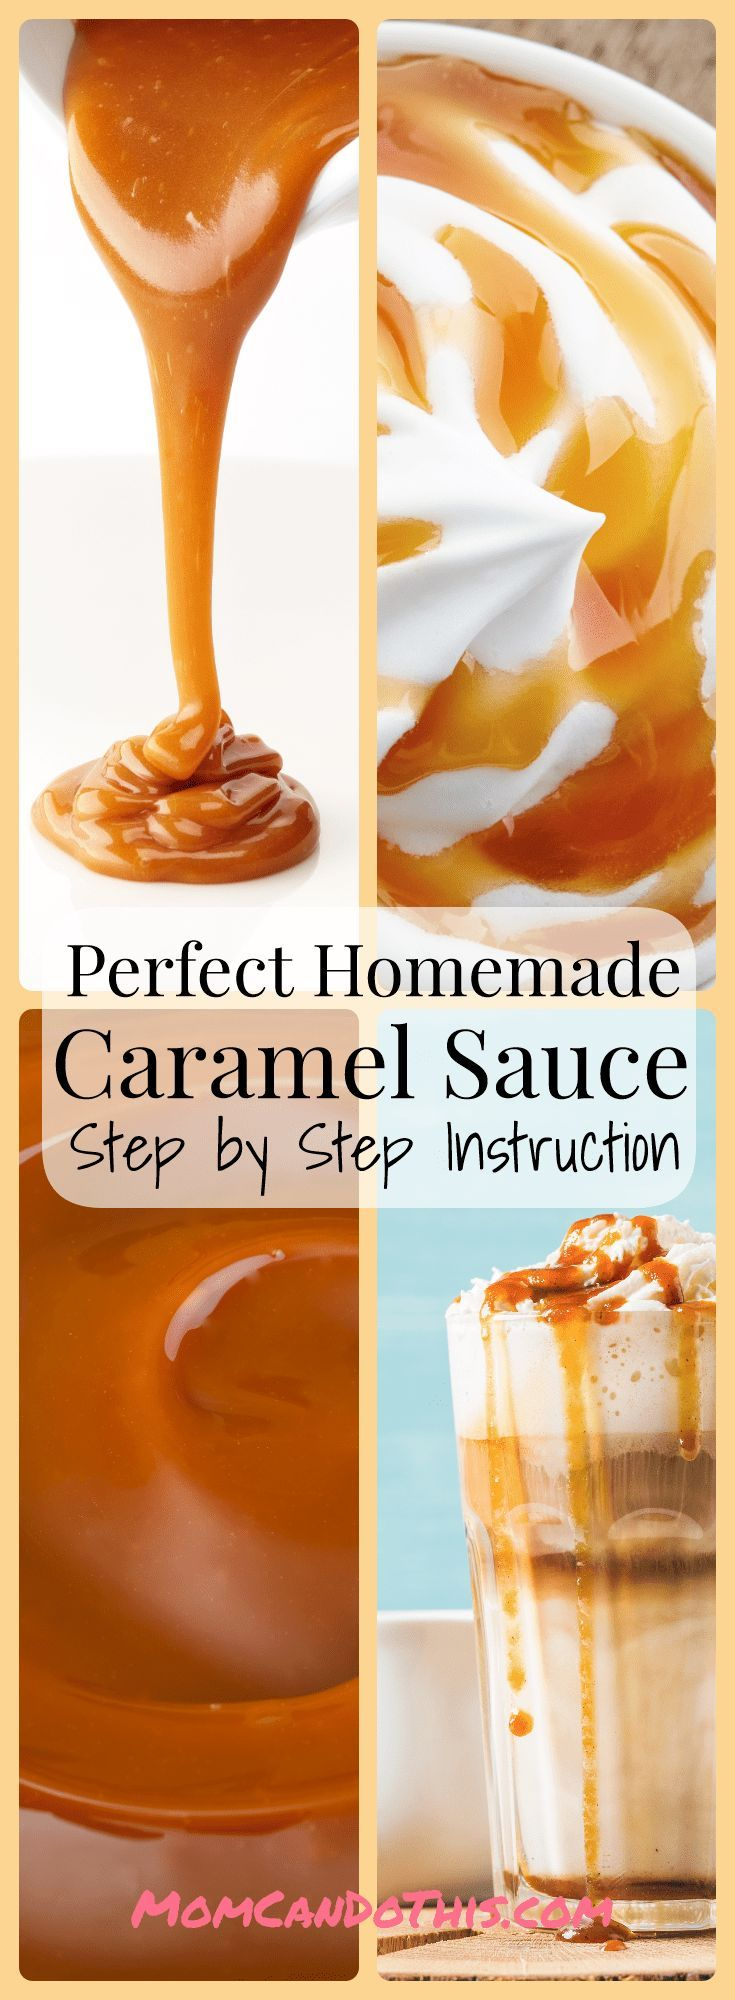 Detailed Step-by-Step Instructions to make perfect Caramel Sauce from scratch. The best Caramel drizzle sauce I've ever made and super frugal, too. Learn how to make this caramel sauce at home!